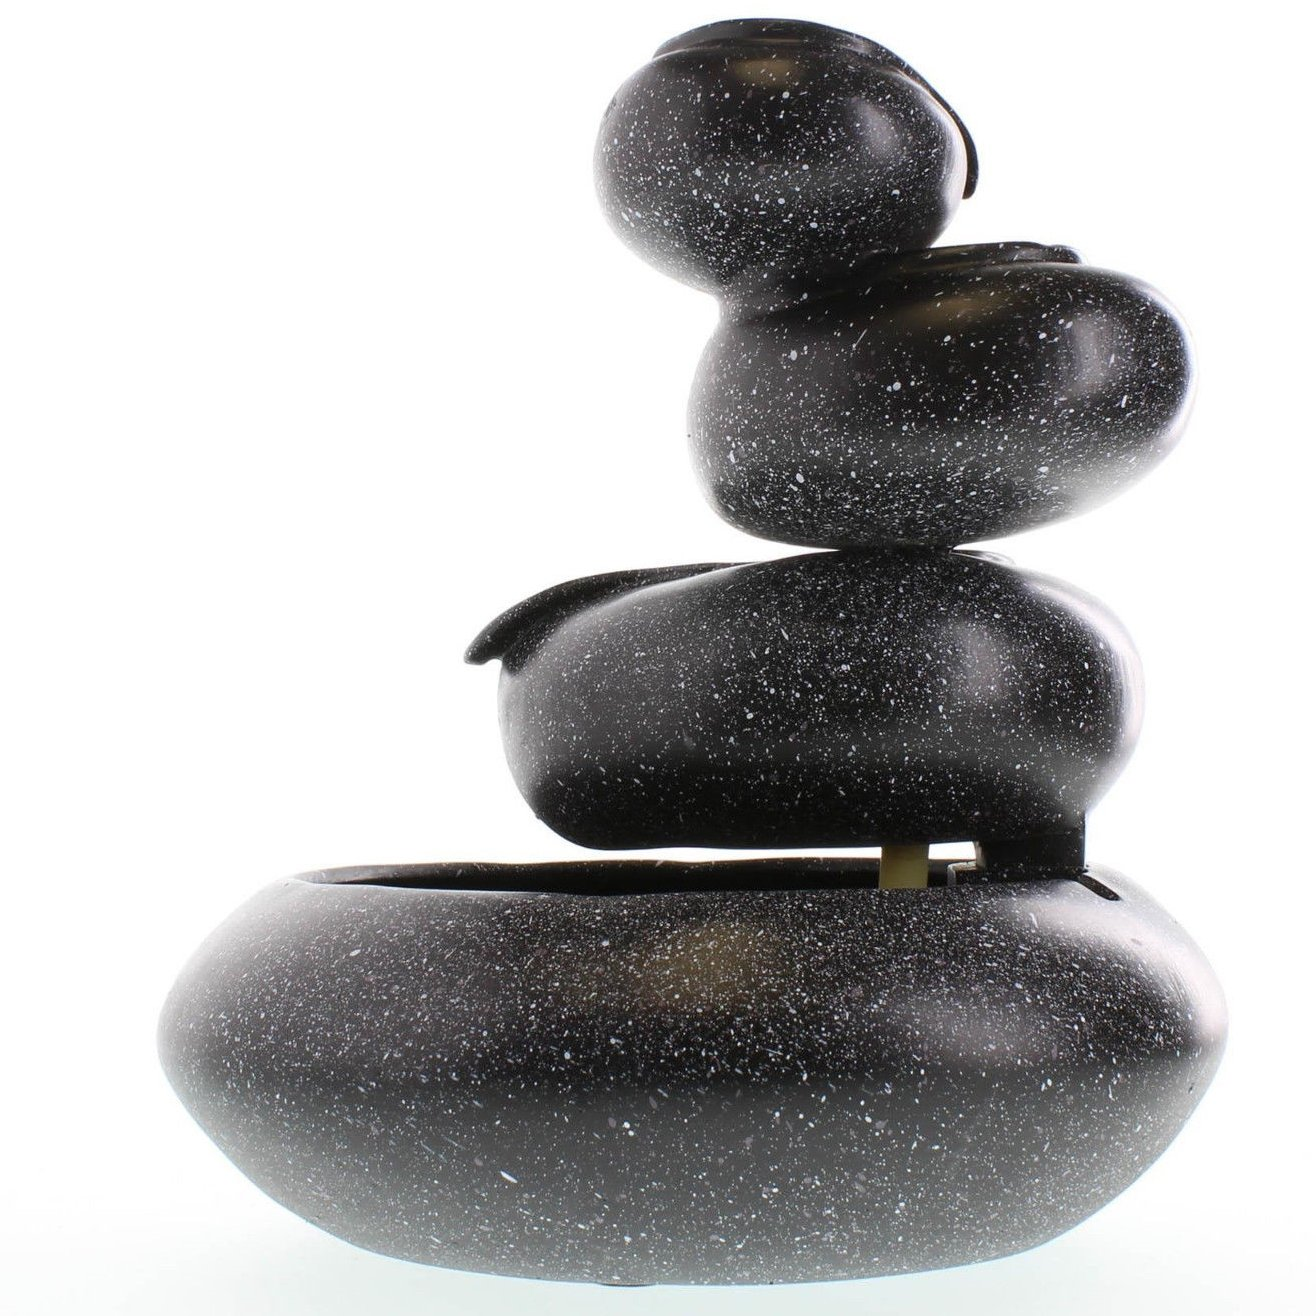 Four Tier Bowl Tabletop Water Fountain Granite Electrical Pump Included Meditation Indoor New Decor